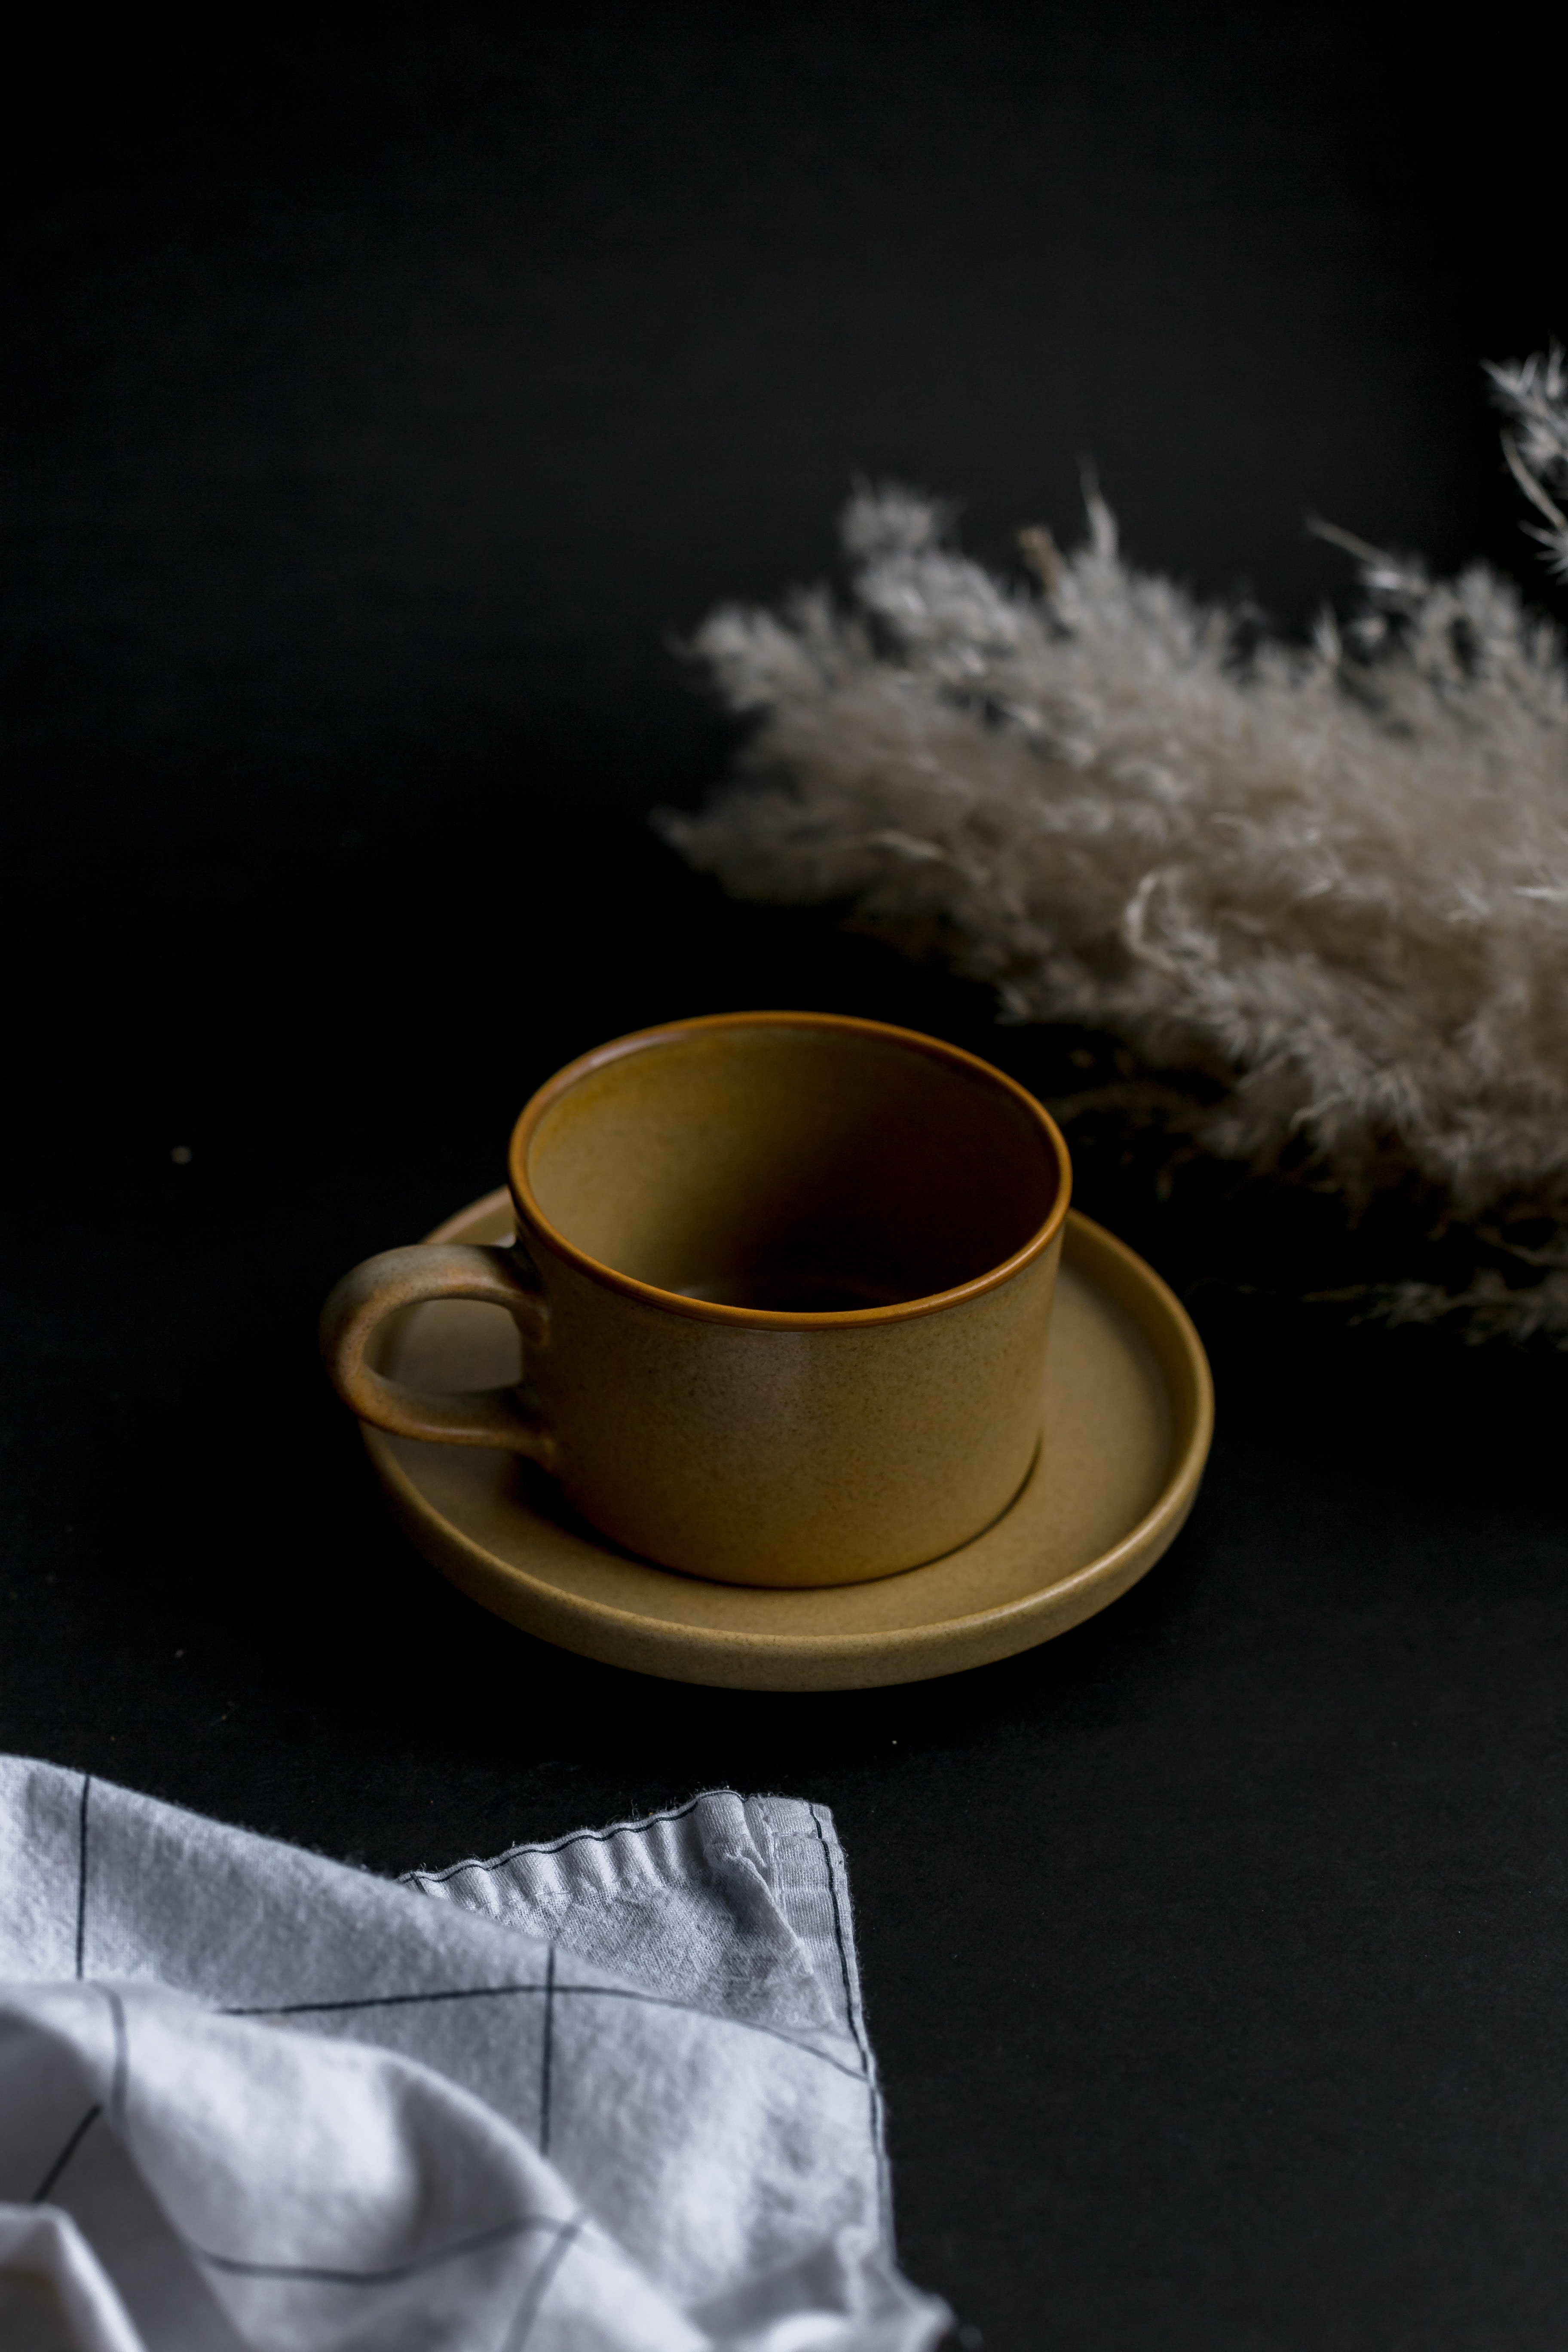 97564 Screensavers and Wallpapers Still Life for phone. Download Still Life, Miscellanea, Miscellaneous, Cup, Ears, Spikes, Napkin, Mug, Saucer pictures for free